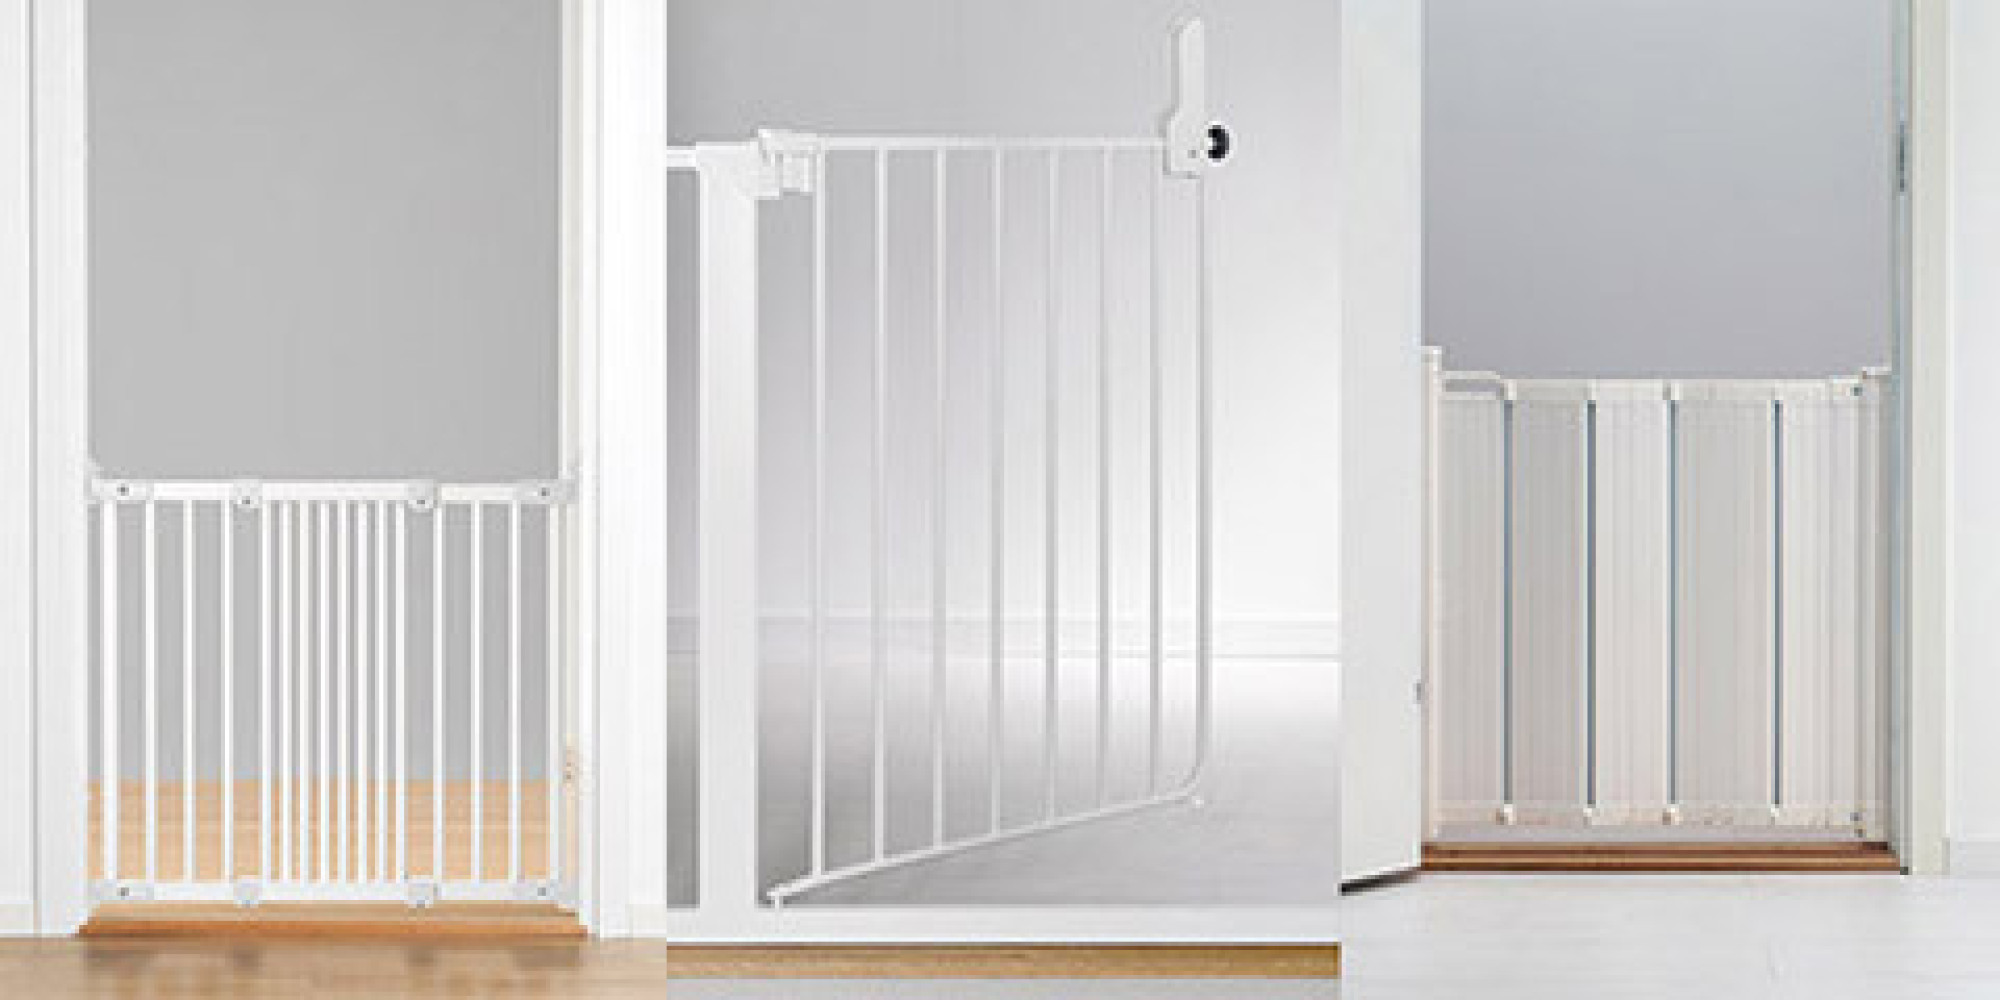 Ikea Recall Parents Are To Stop Using These Gates Immediately